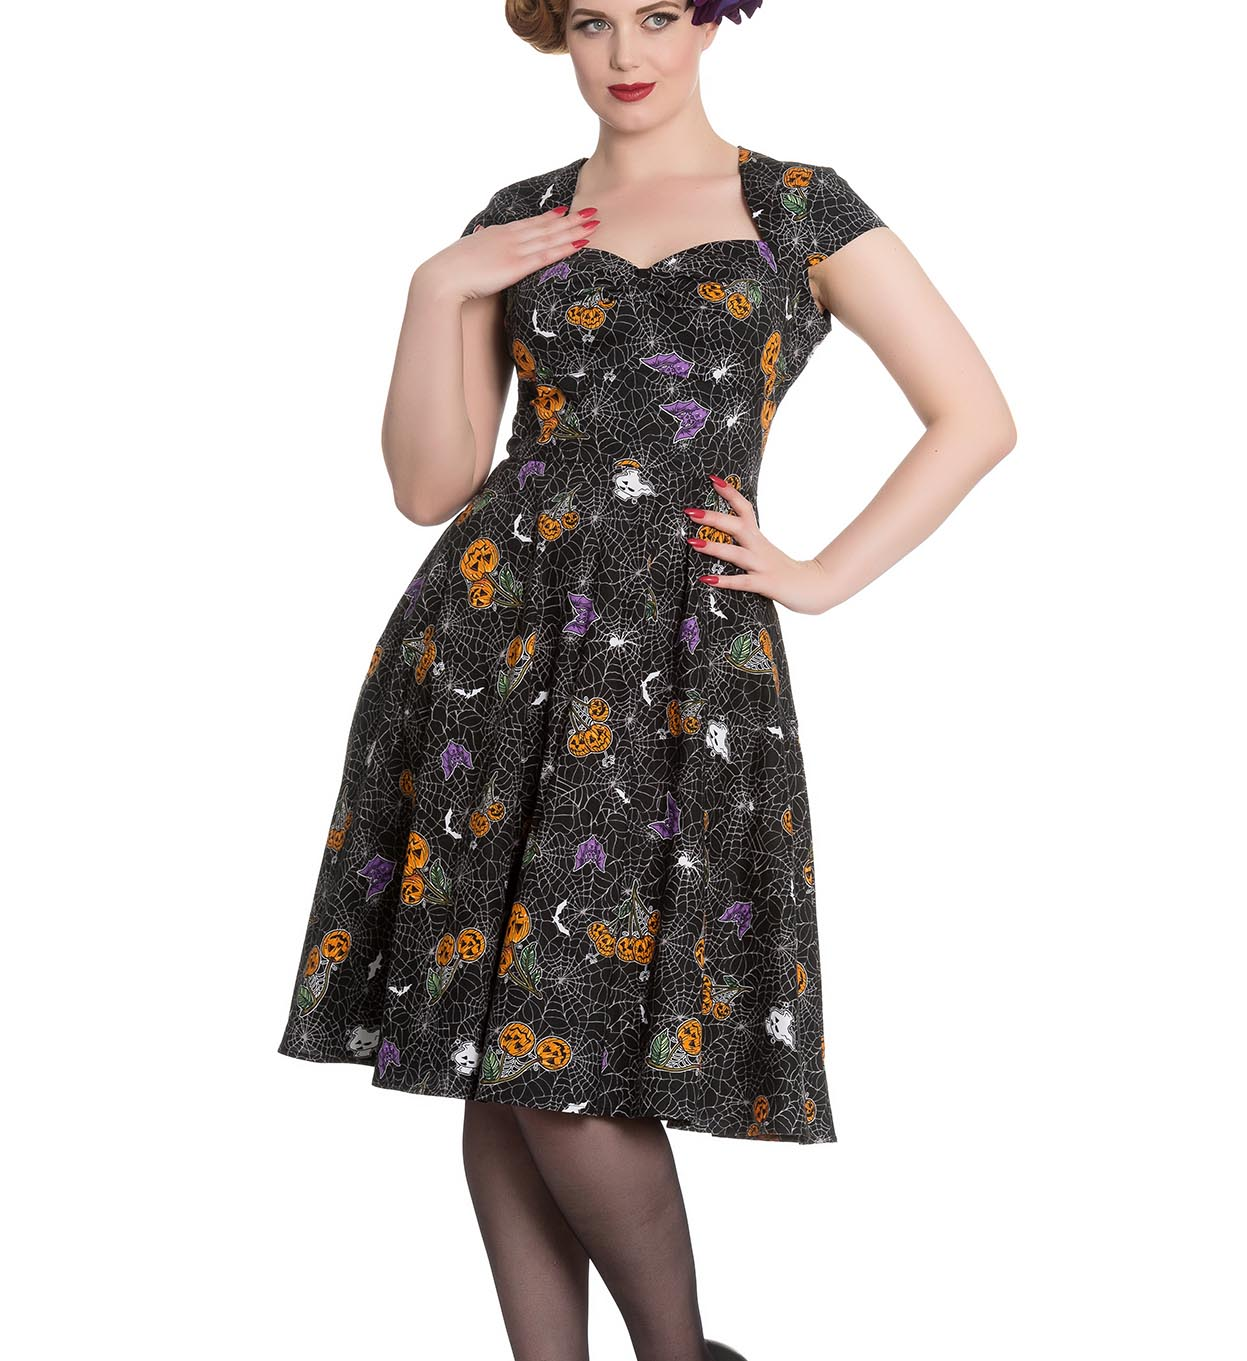 Hell-Bunny-Black-Pinup-50s-Goth-Webs-Dress-HARLOW-Halloween-All-Sizes thumbnail 11